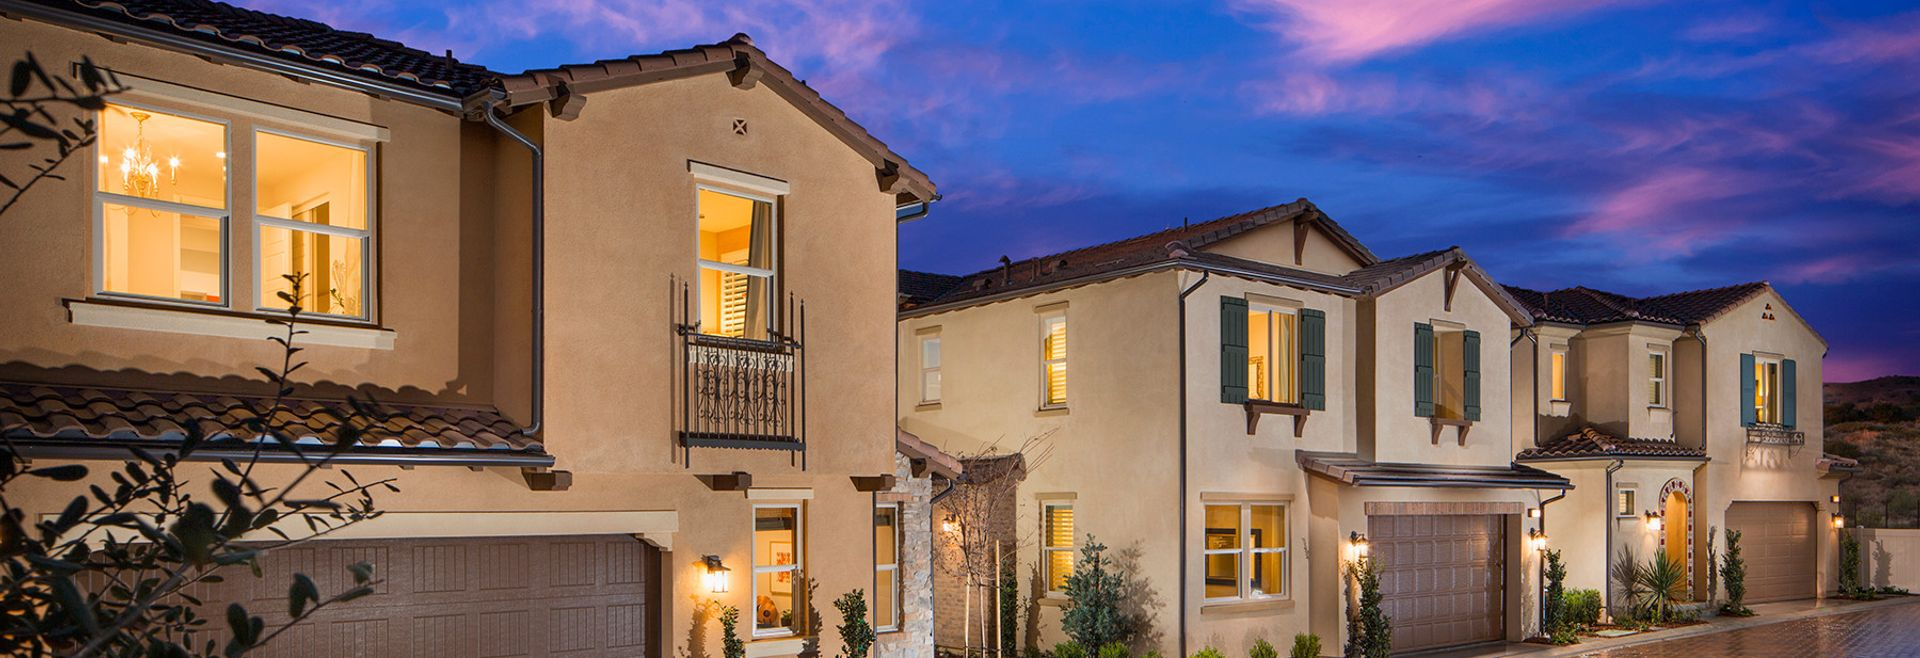 Bristol at Baker Ranch by Shea Homes in Lake Forest, CA